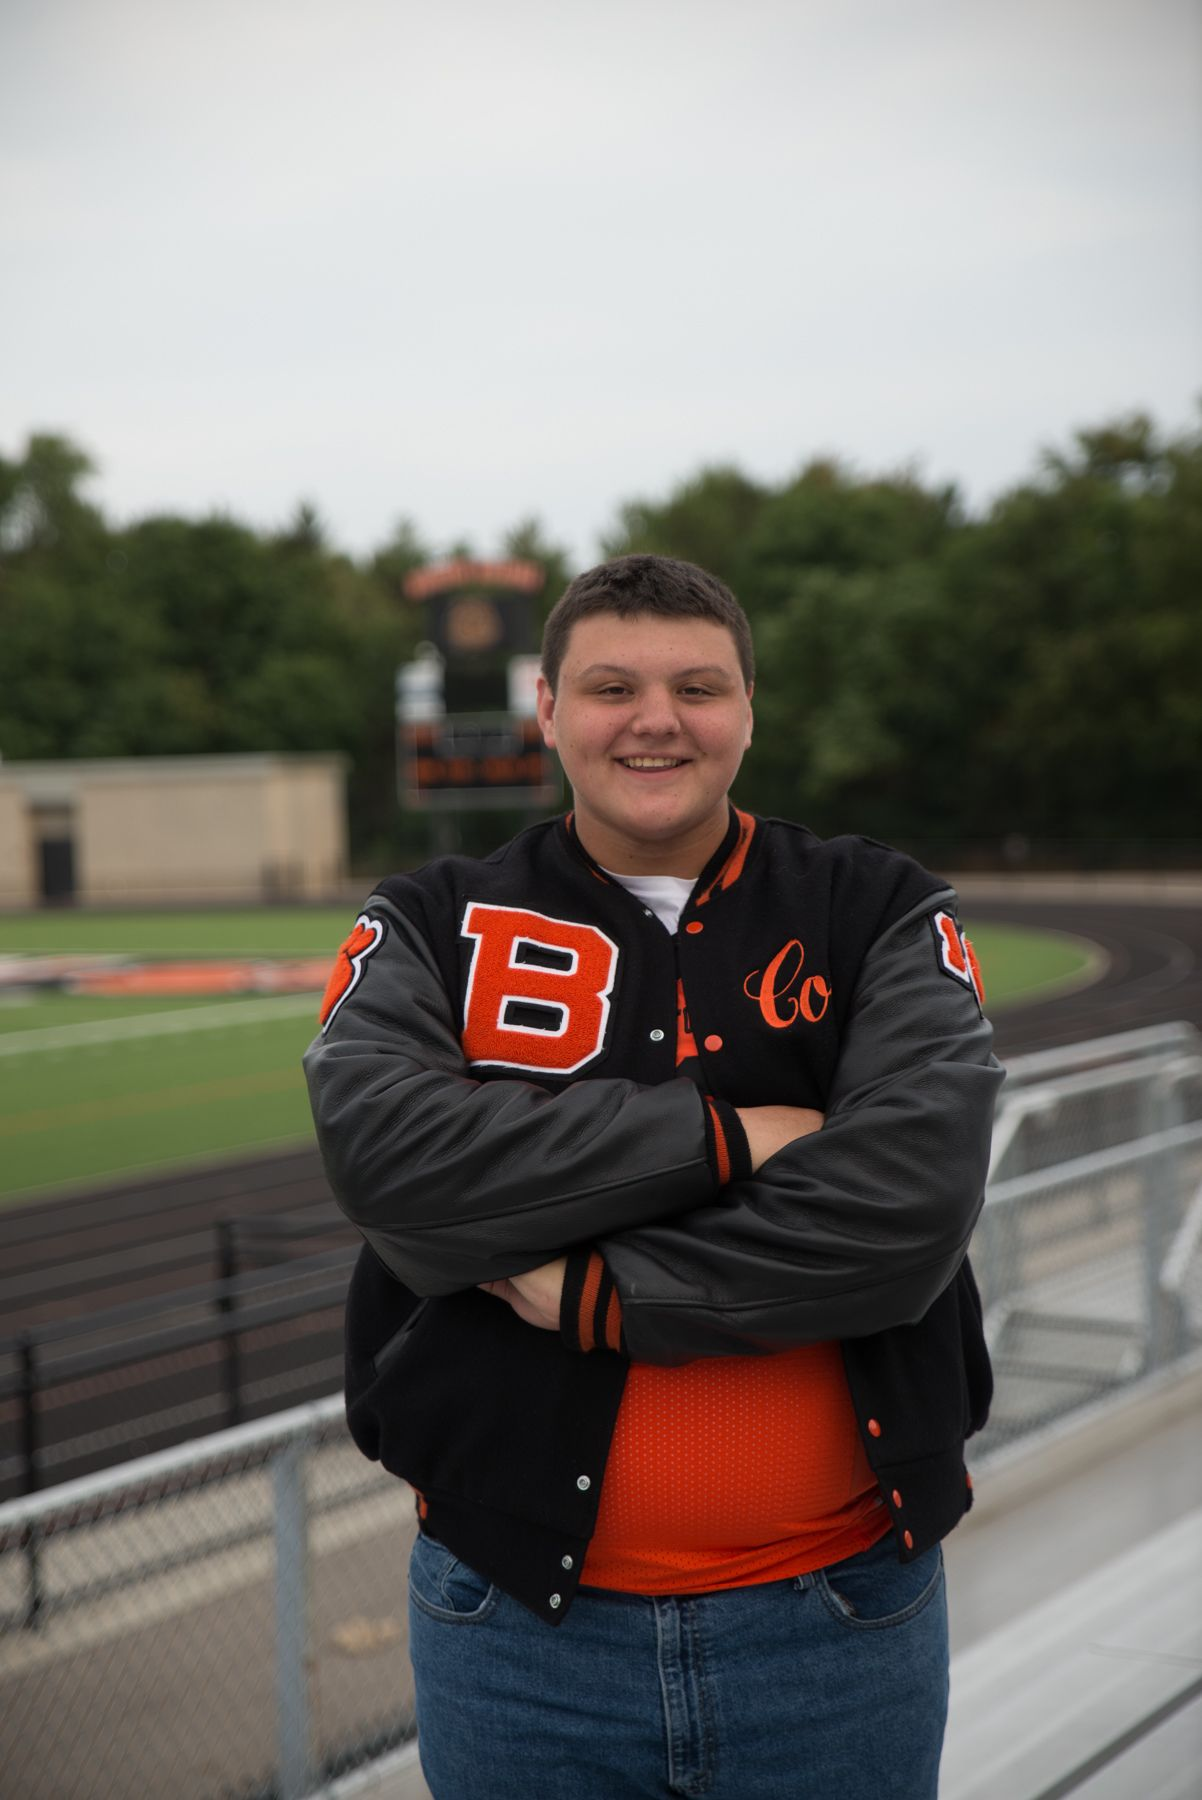 Pin by Bonnie Brubaker on Colin Football senior pictures